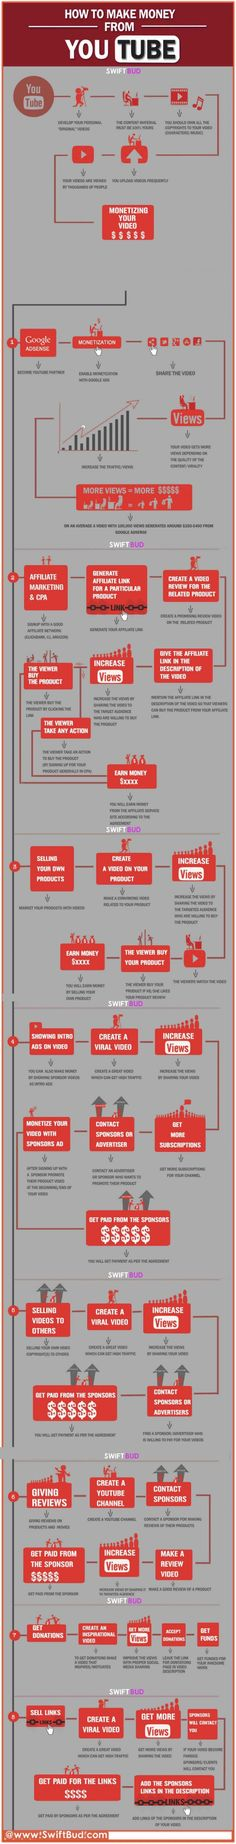 How to Make Money Online Using YouTube [Infographic]